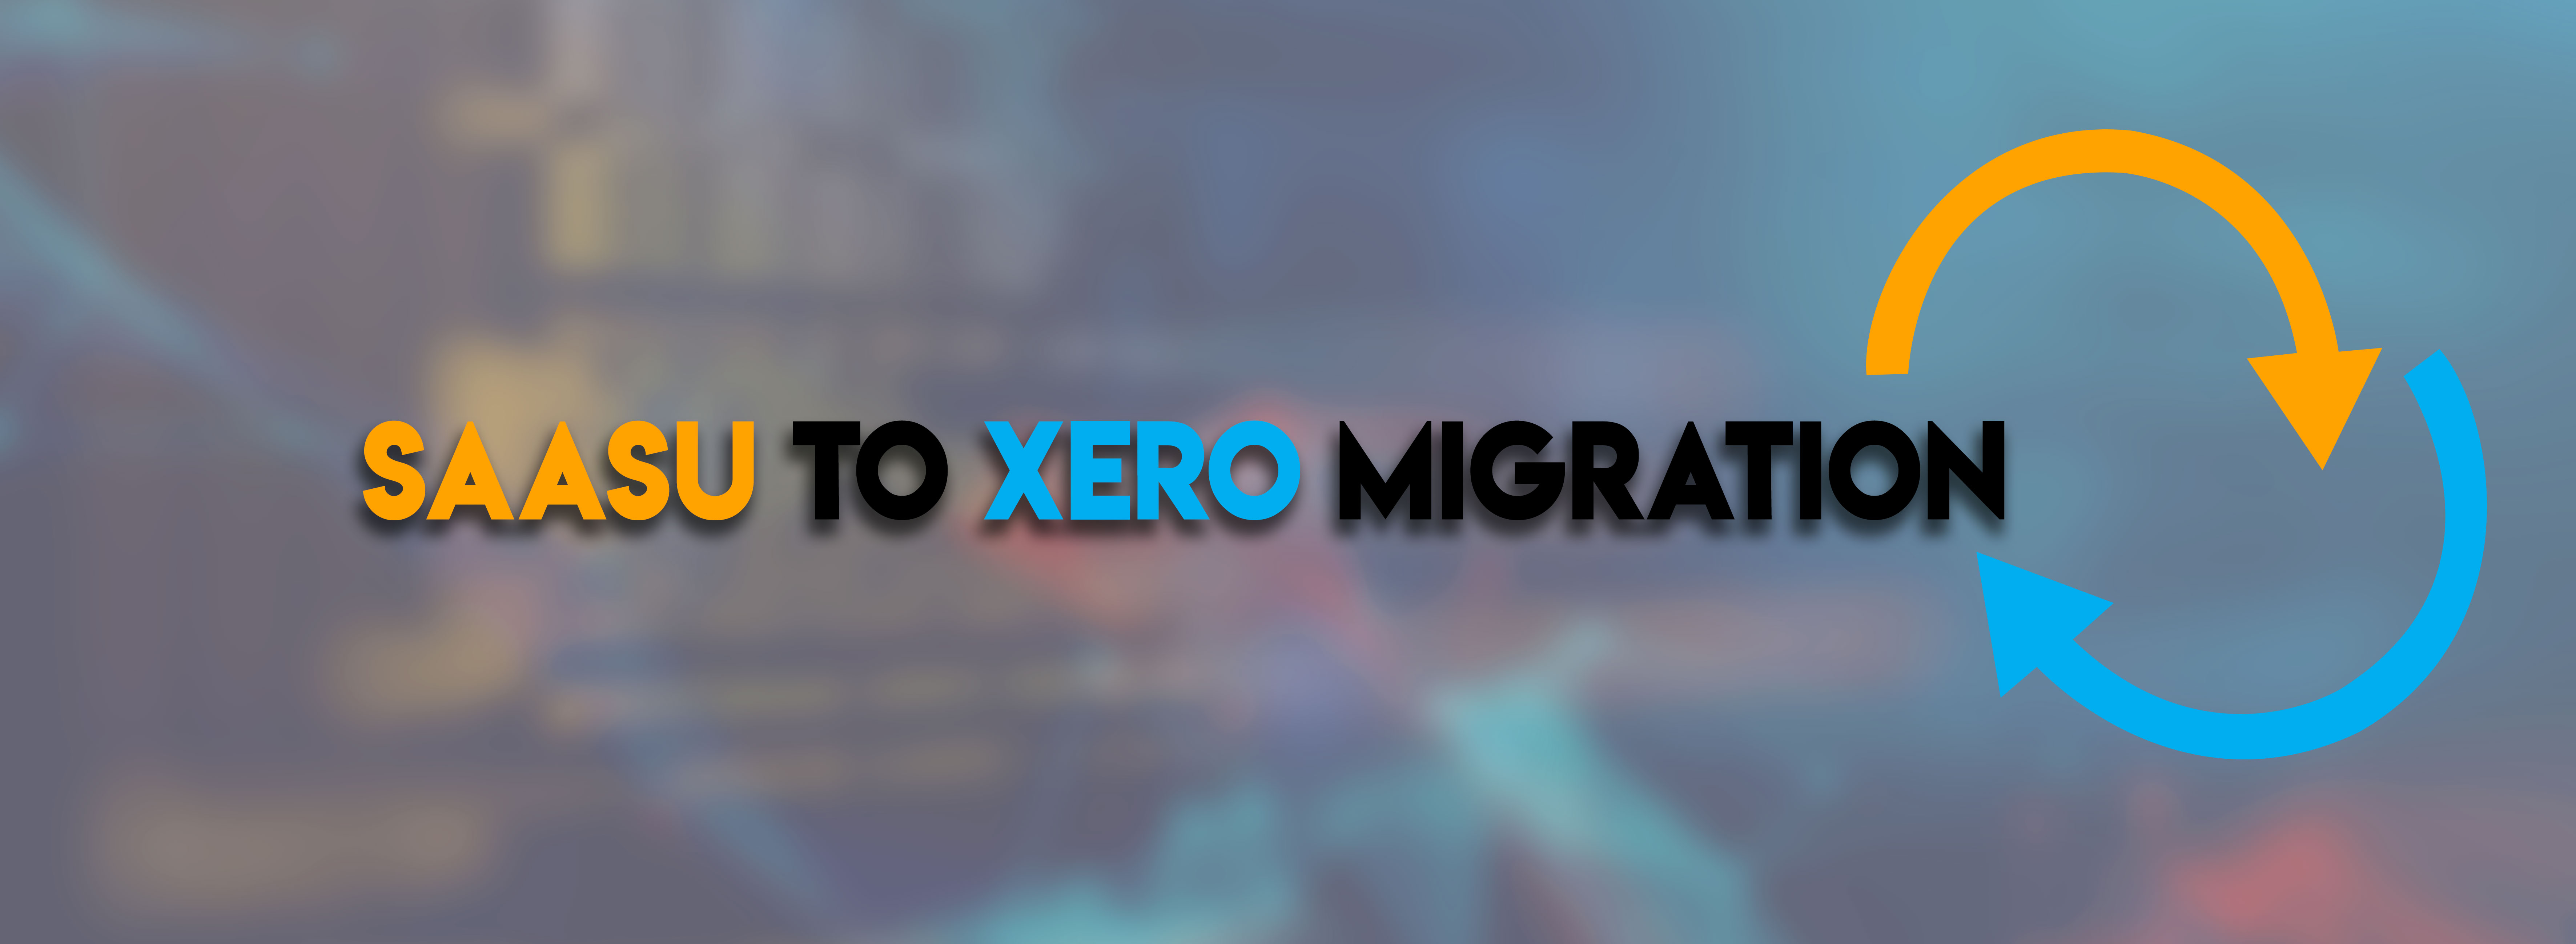 SAASU to XERO Migration